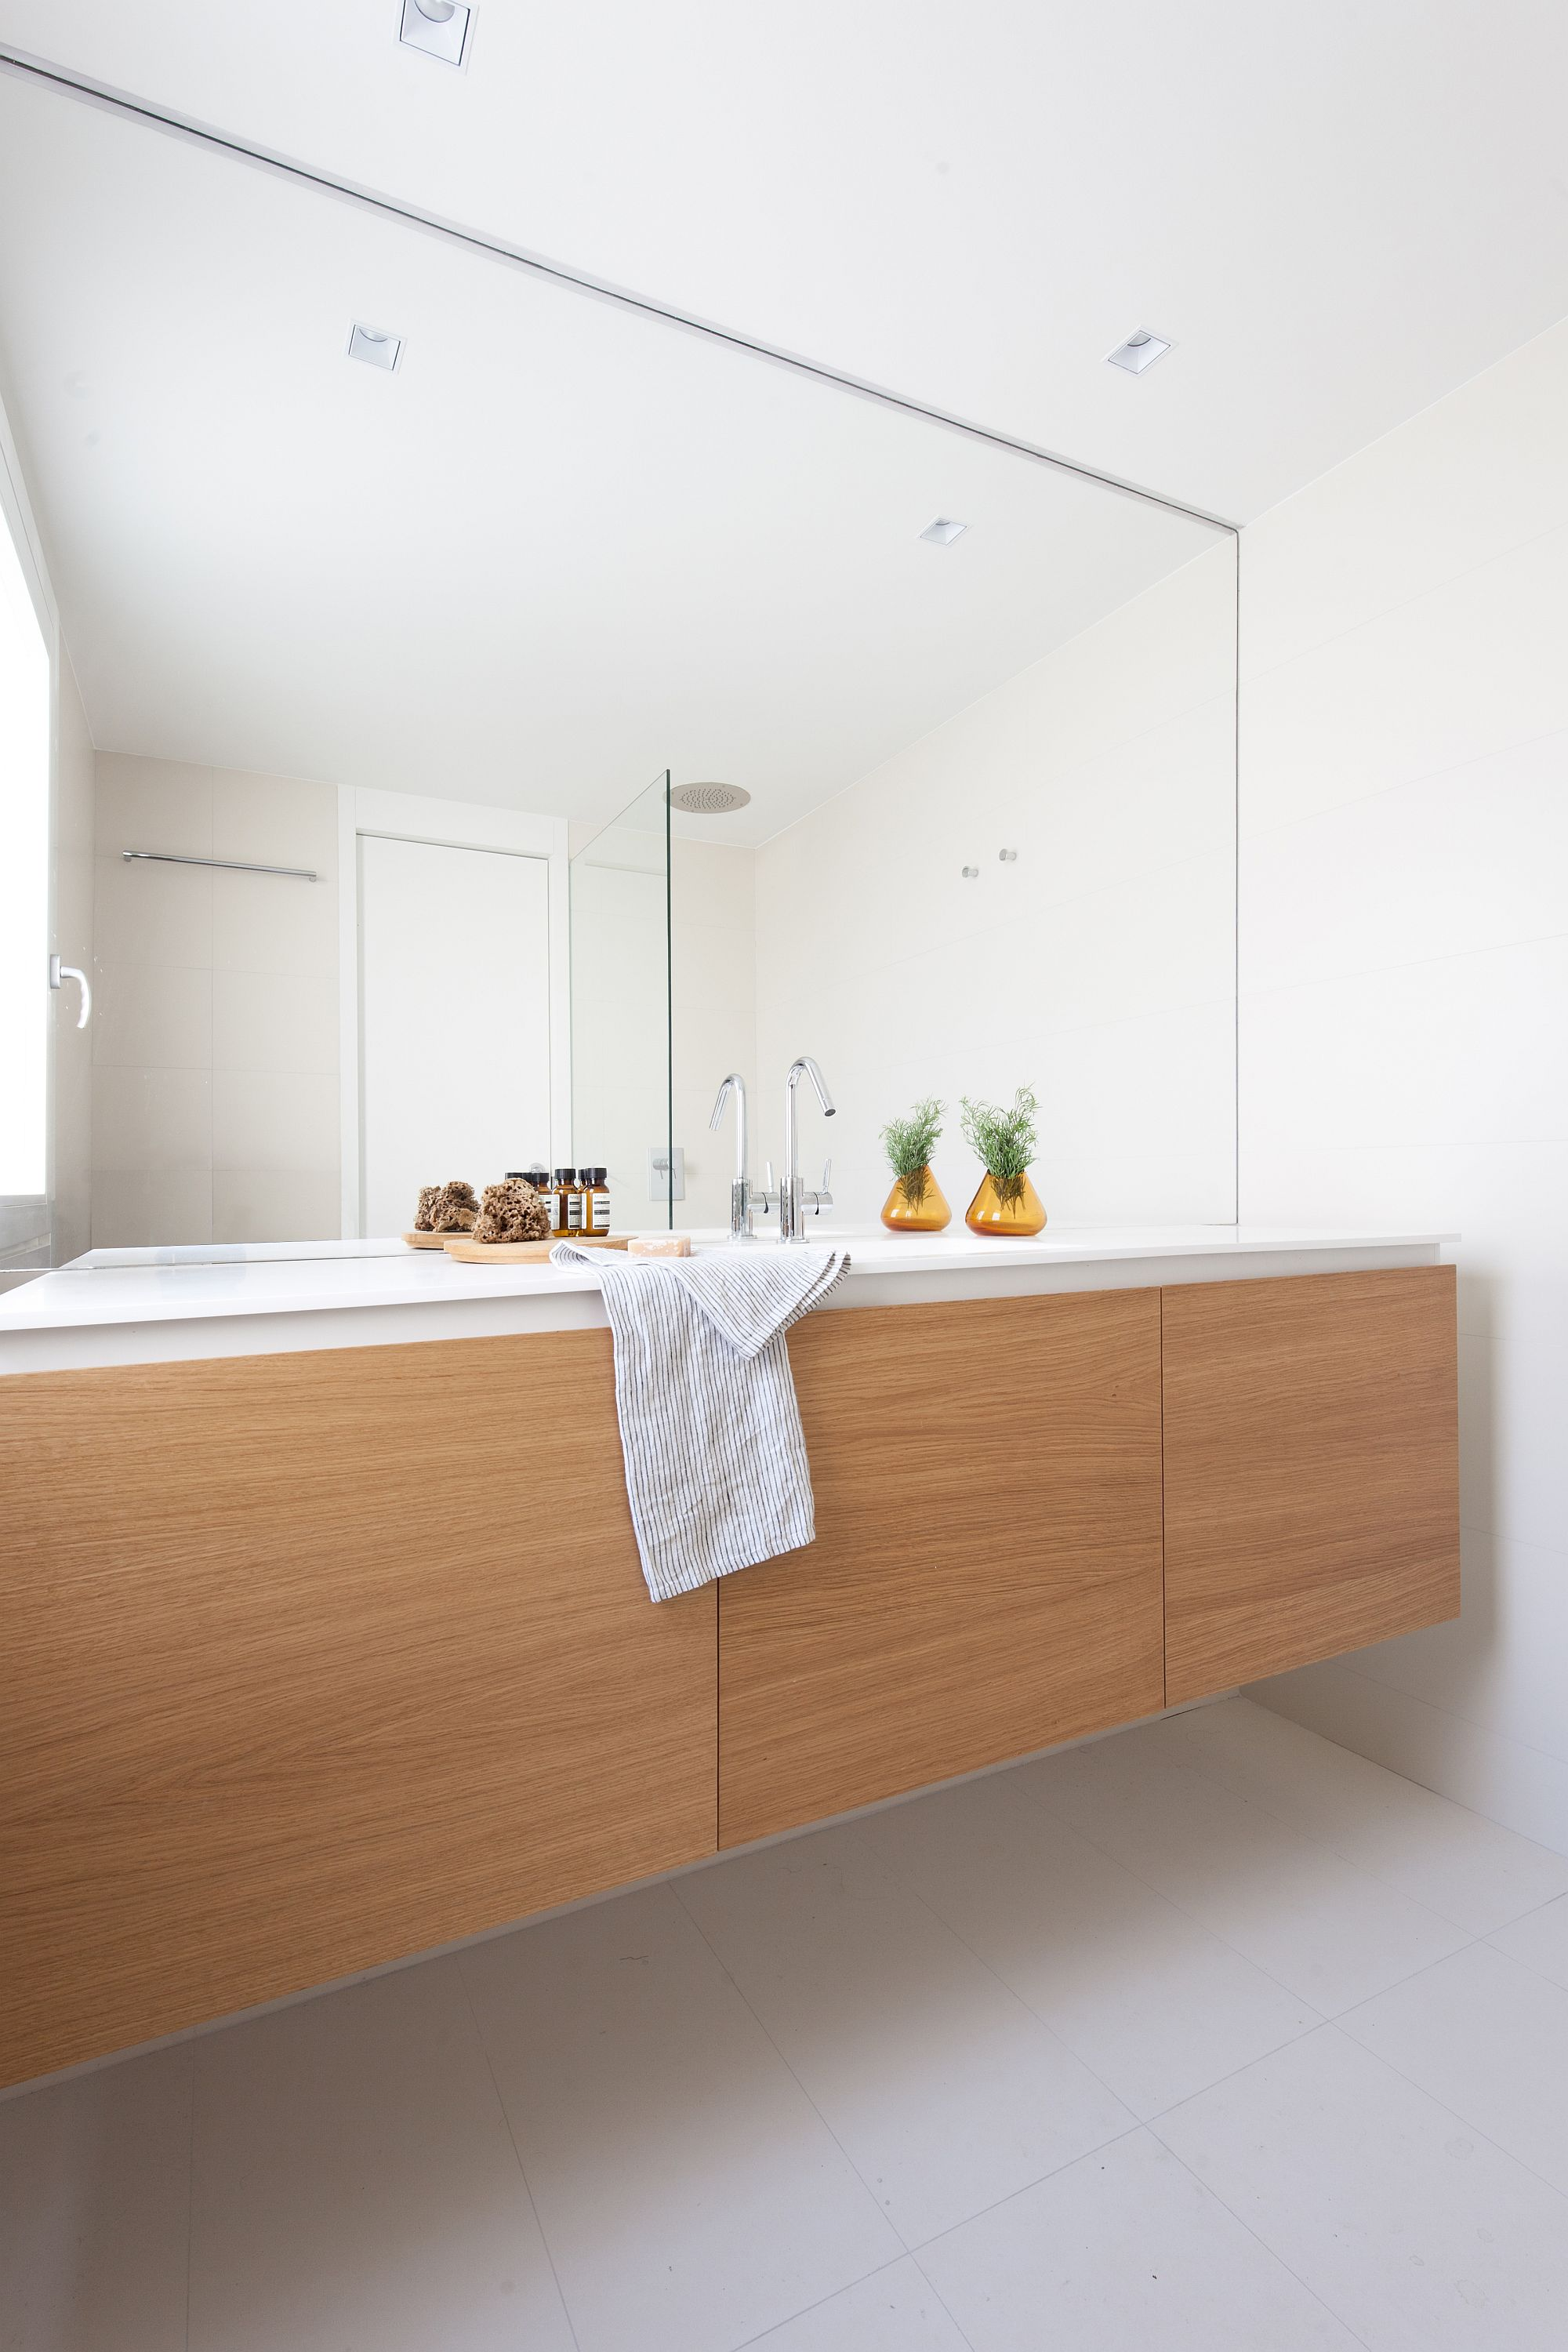 Bathroom in white with floating wooden vanity